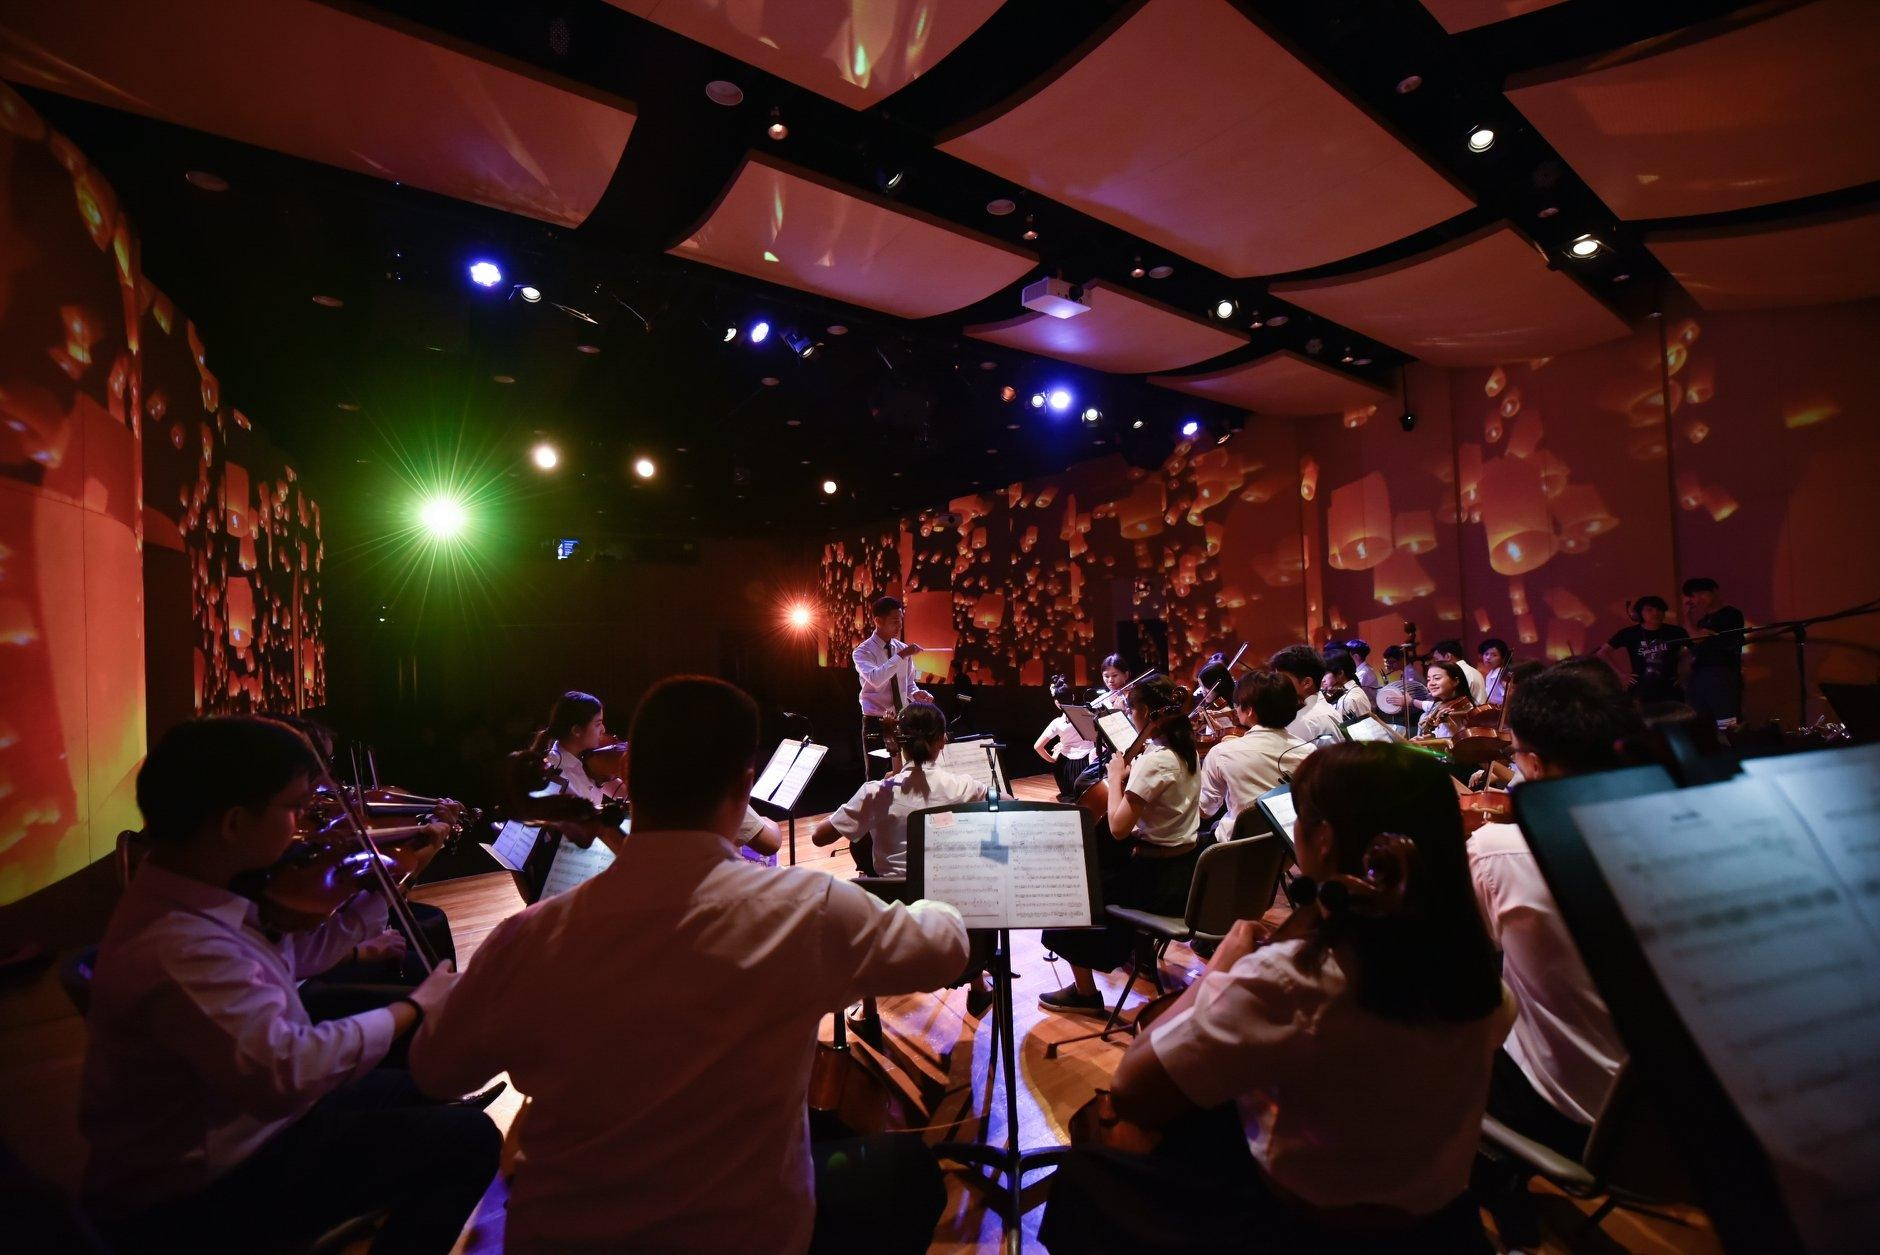 SUMHUA CONCERT: First Collaborative Concert Project of THEMSN